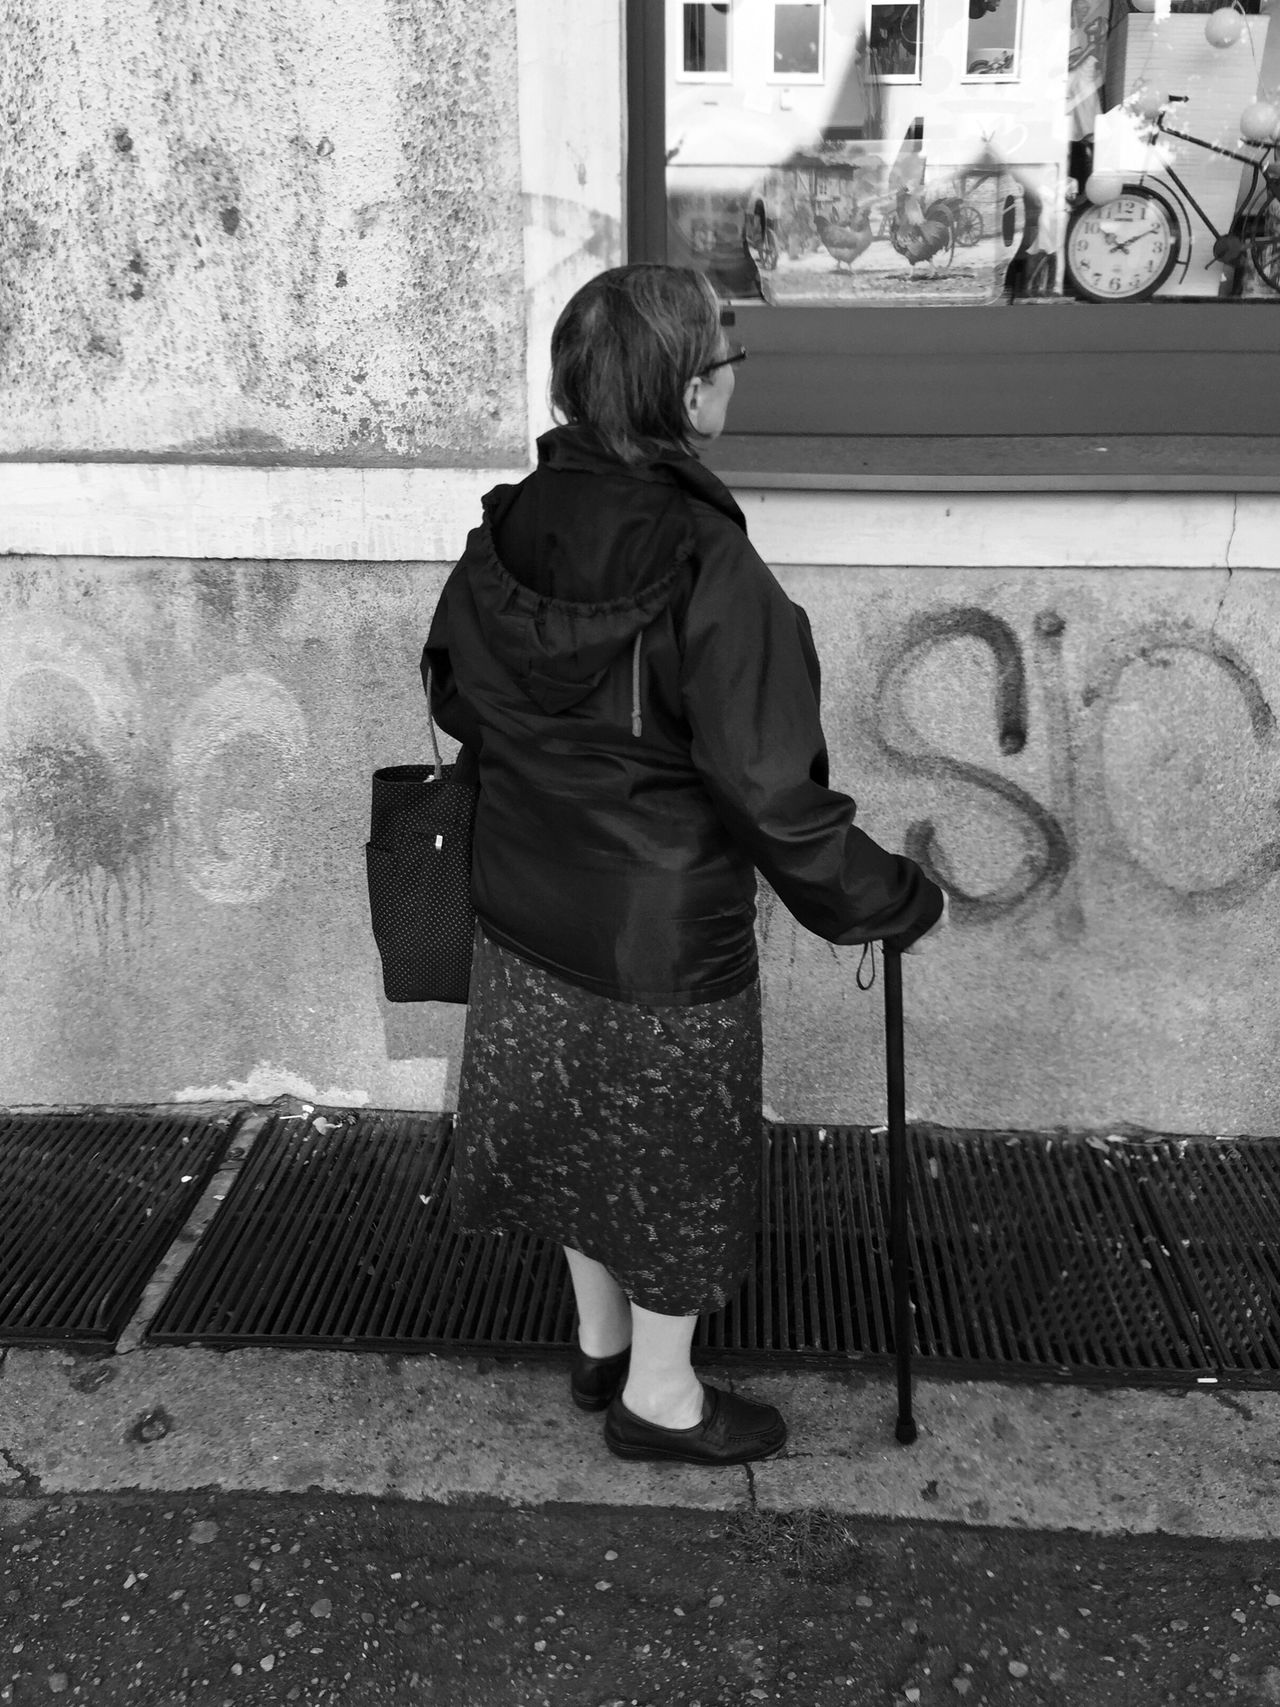 Fascination - Gdynia 22 September 2016 ( IPhone 6+ ) Architecture Black & White Black And White Bnw Bnw_collection EyeEm Best Shots EyeEmBestPics Gdynia Leisure Activity Lifestyles One Person Overcoat Poland Real People Rear View Shopping Standing Warm Clothing Window Shopping Woman